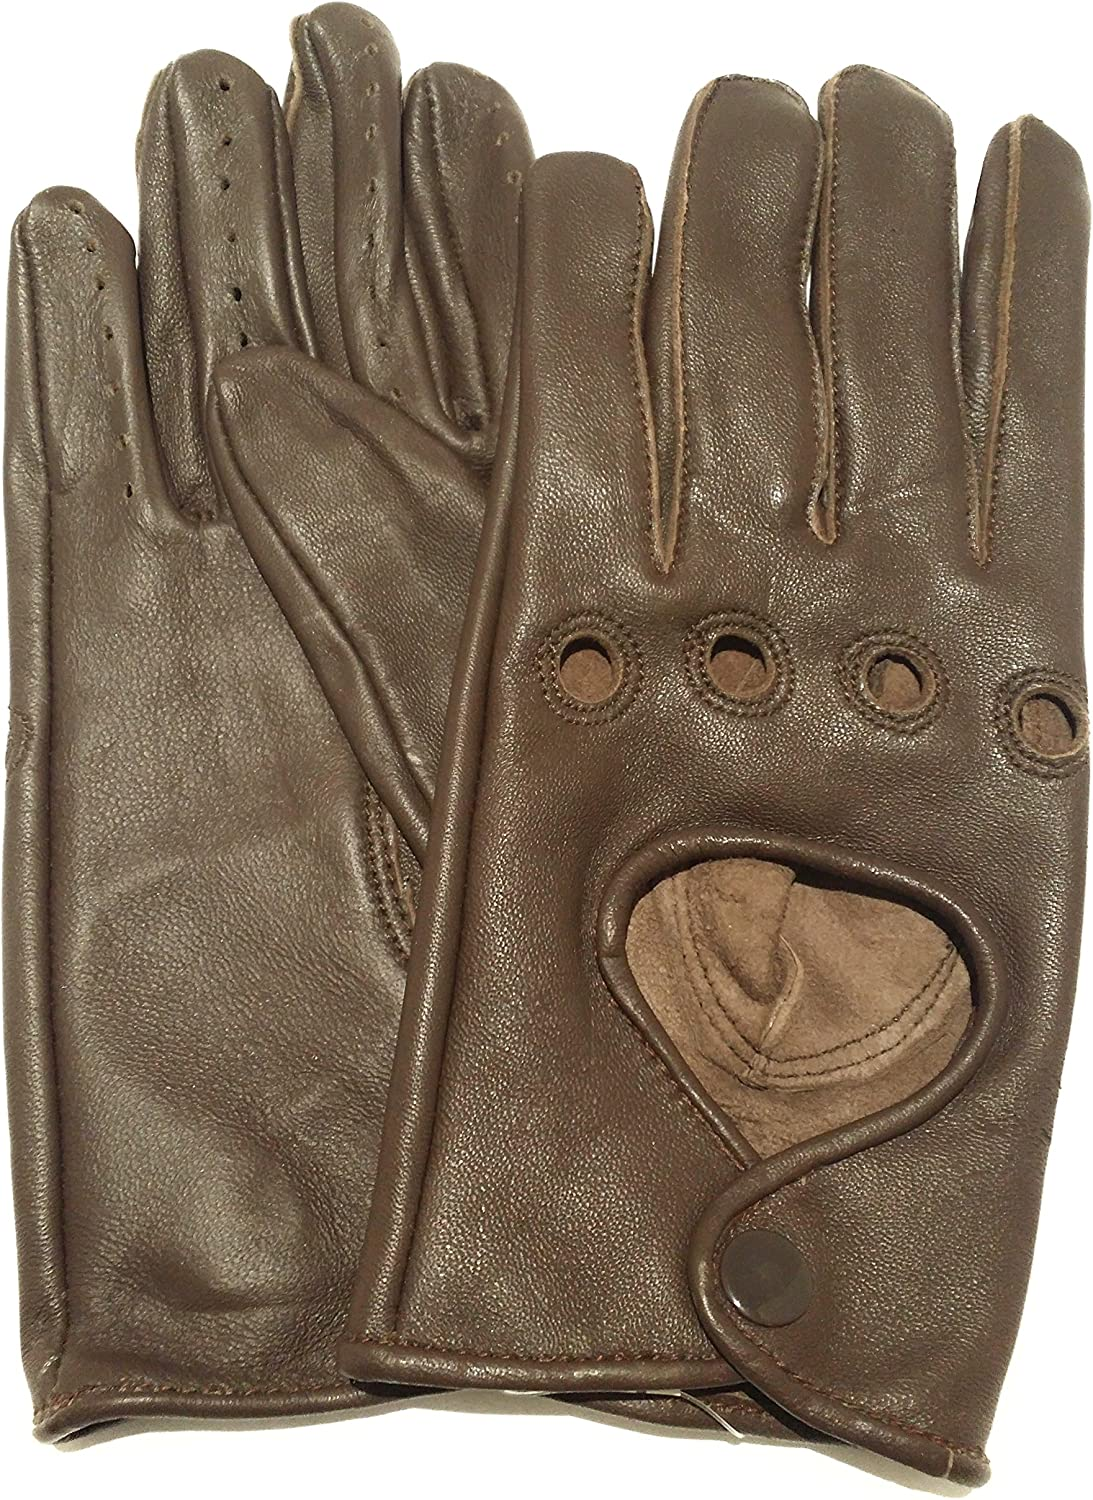 Sportsimpex Women Unlined Leather Driving Gloves (XL, BROWN)